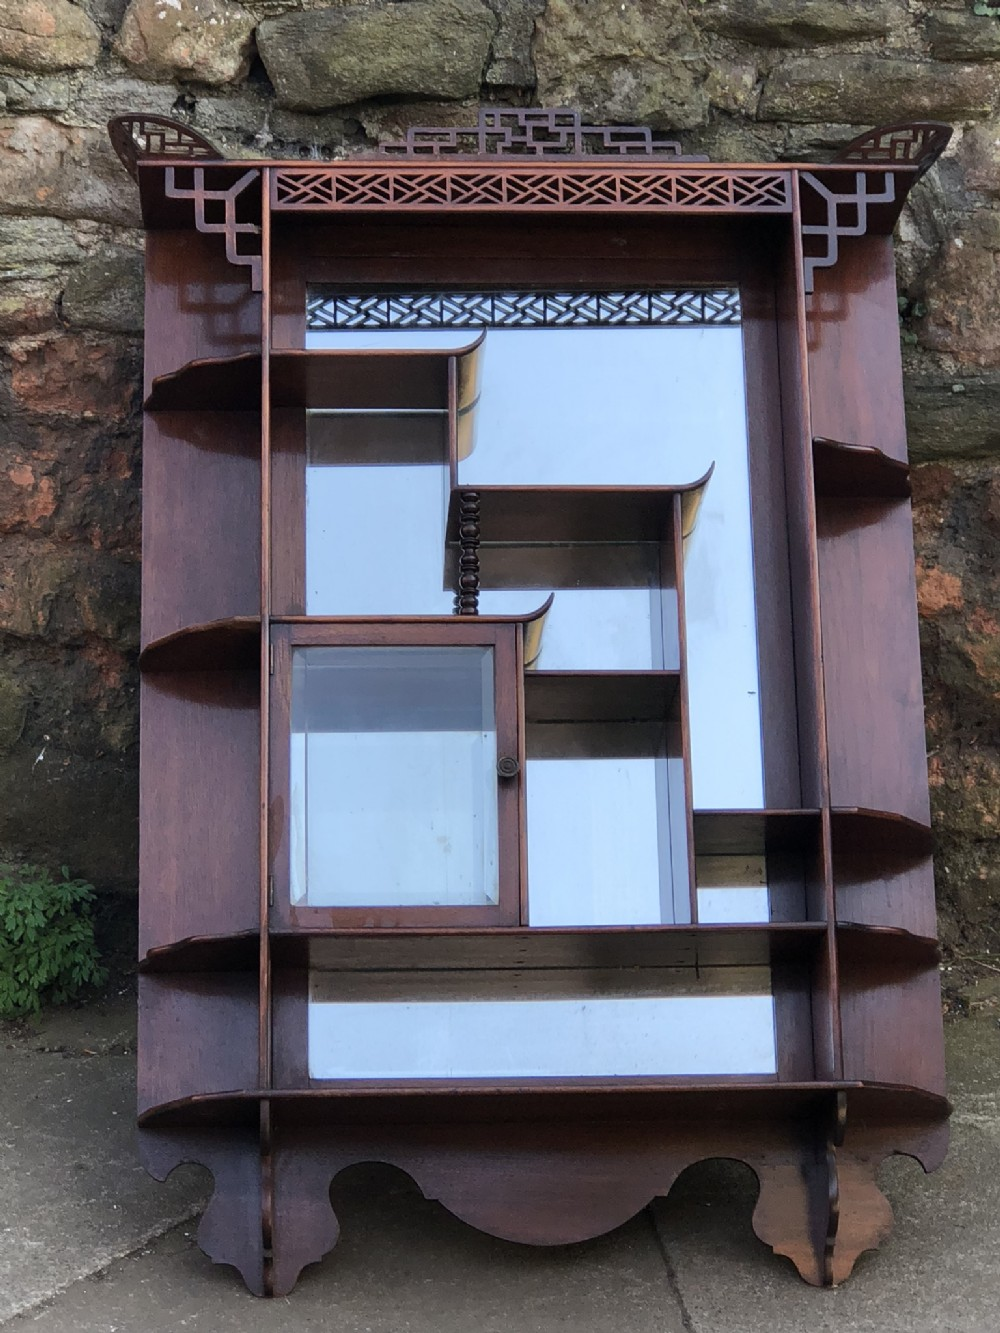 edwardian chinese chippendale influenced wall shelves